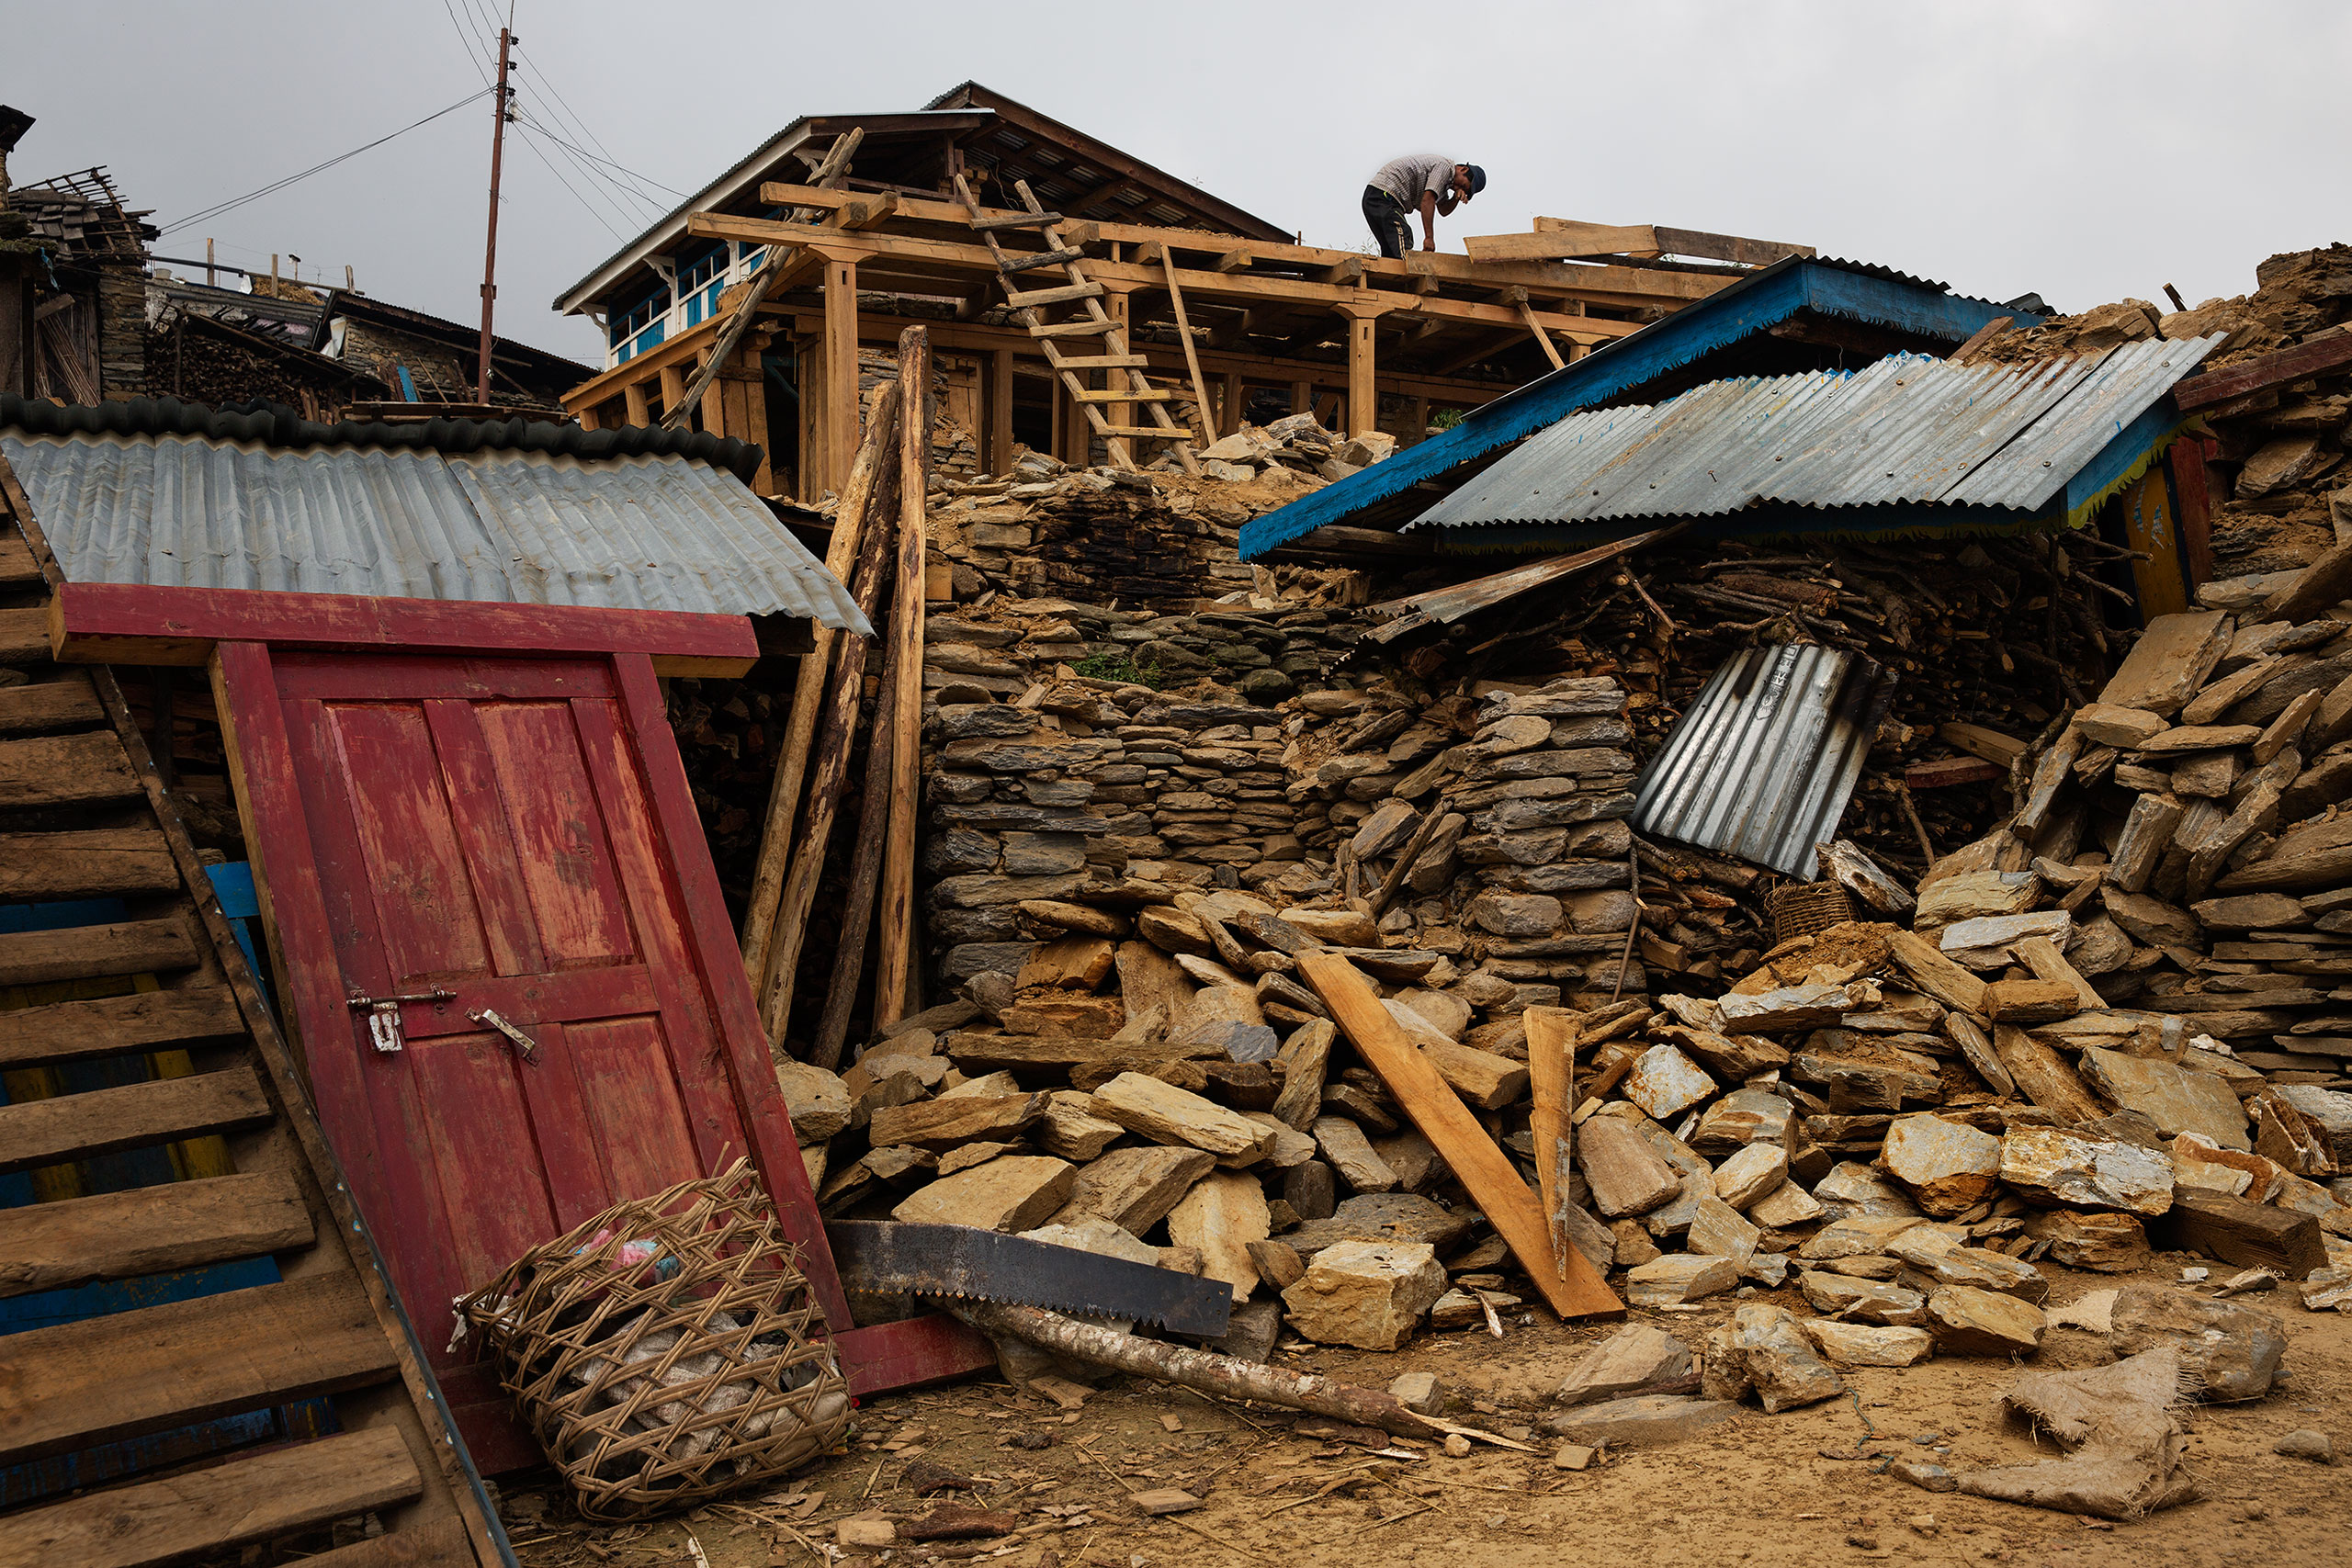 Inhabitants salvage building materials from their destroyed homes in Gumda Village, near the epicenter of  the earthquake in Gorkha district, where five people died and 14 are still missing in landslides, May 8, 2015.